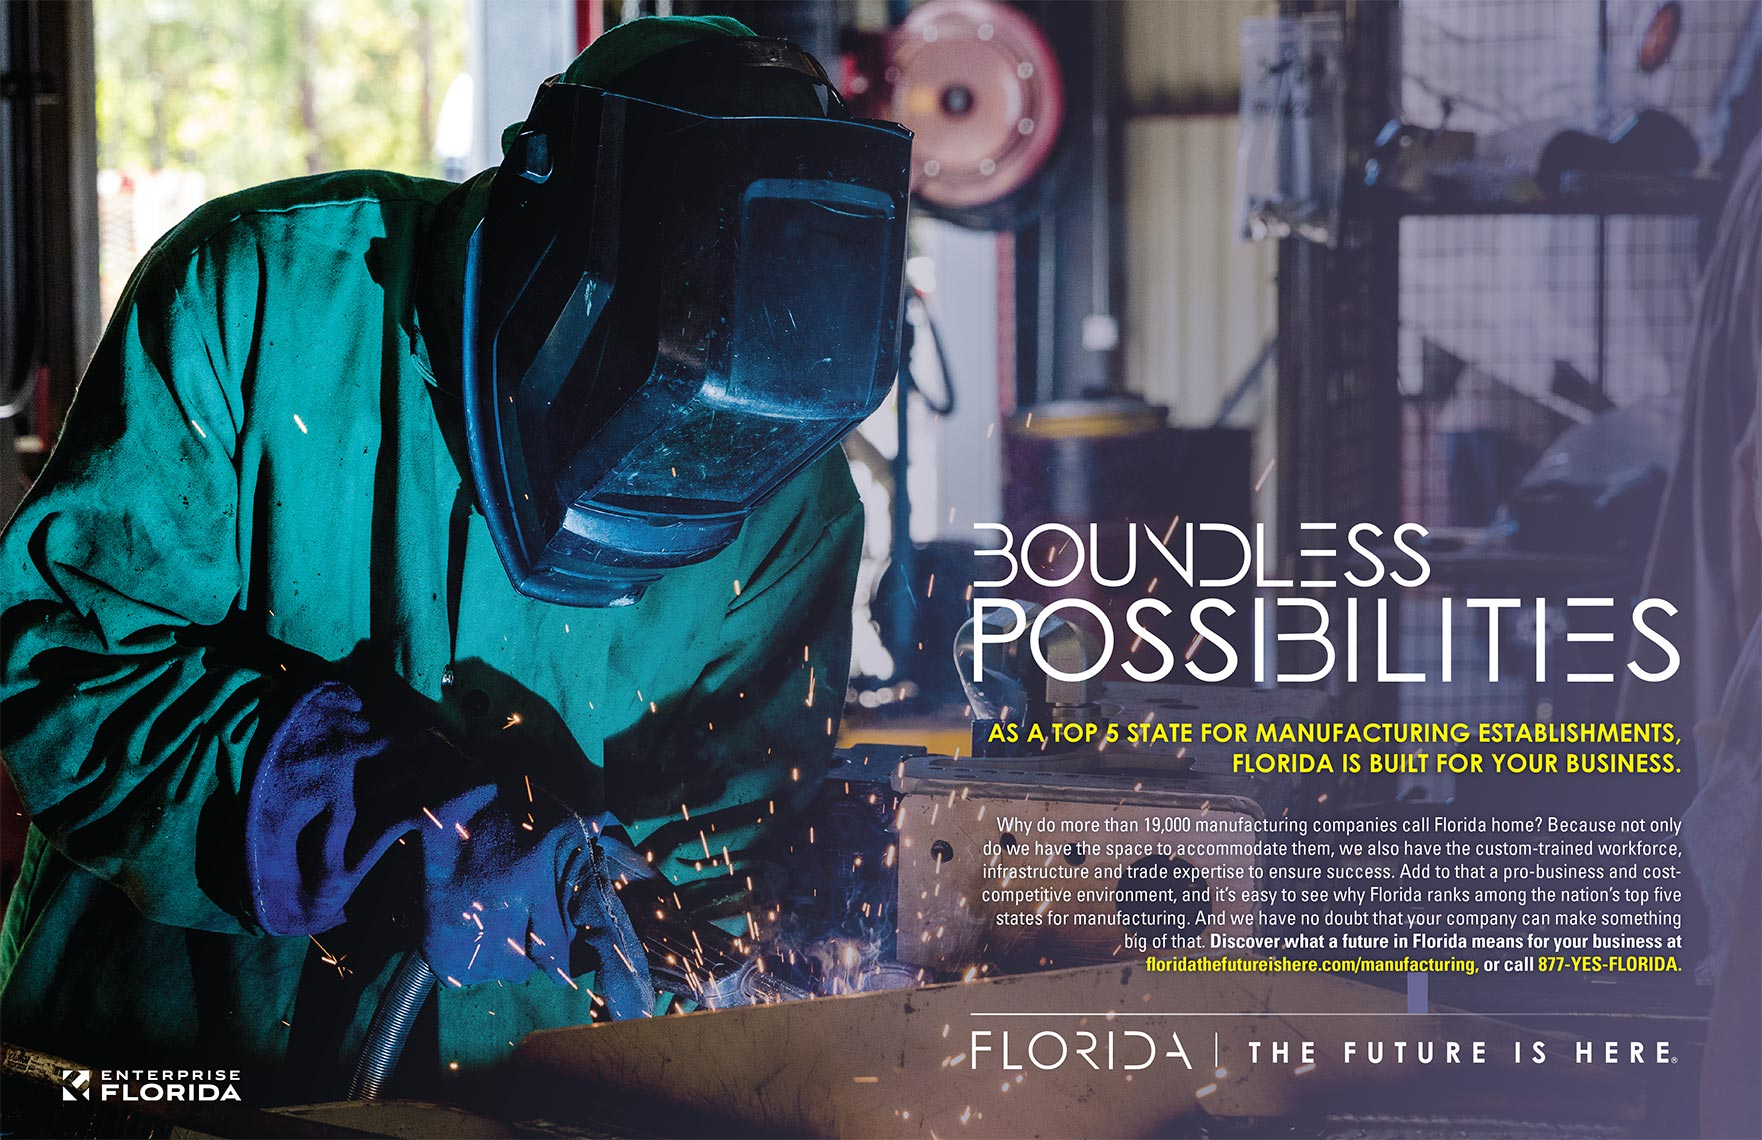 EFI-BOUNDLESS-POSSIBILITIES